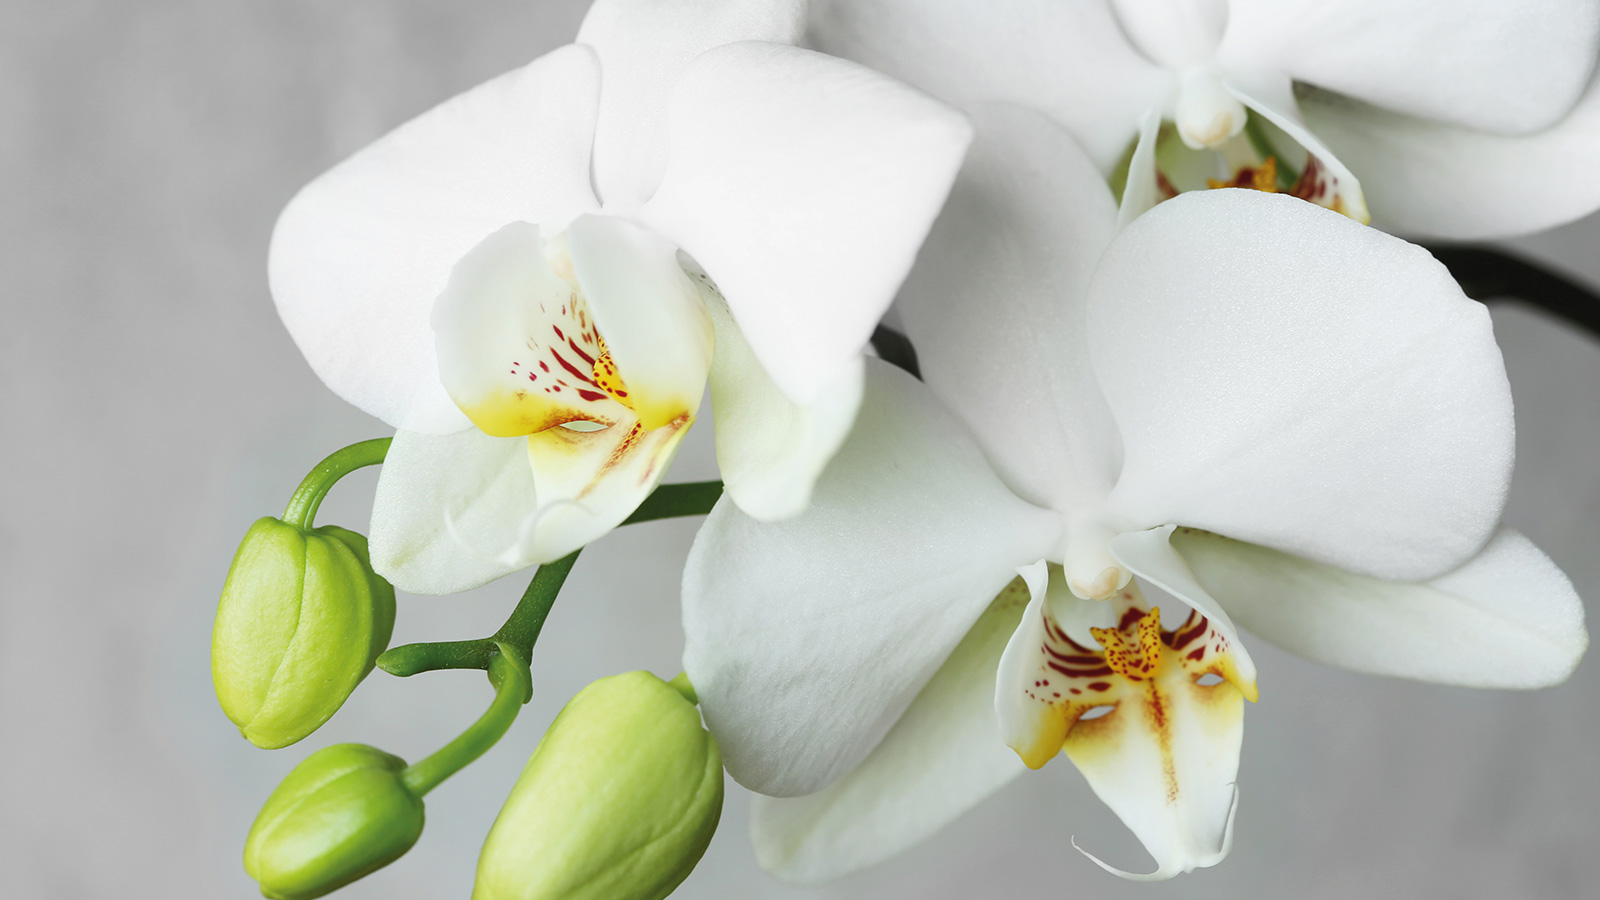 Over 4,000 species of orchids are found in Colombia.